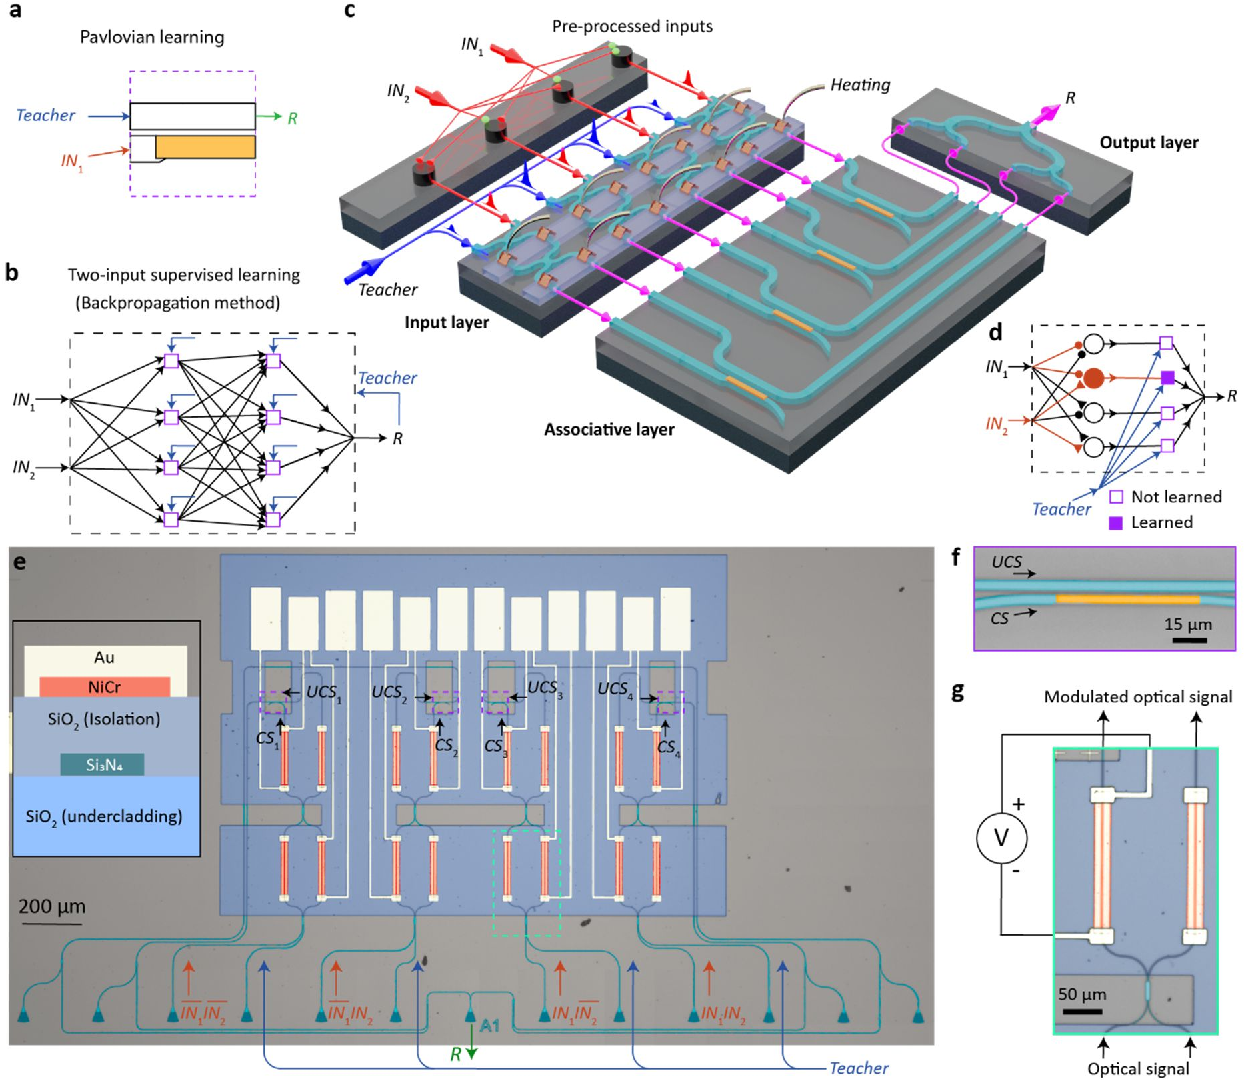 Figure 4 for Monadic Pavlovian associative learning in a backpropagation-free photonic network